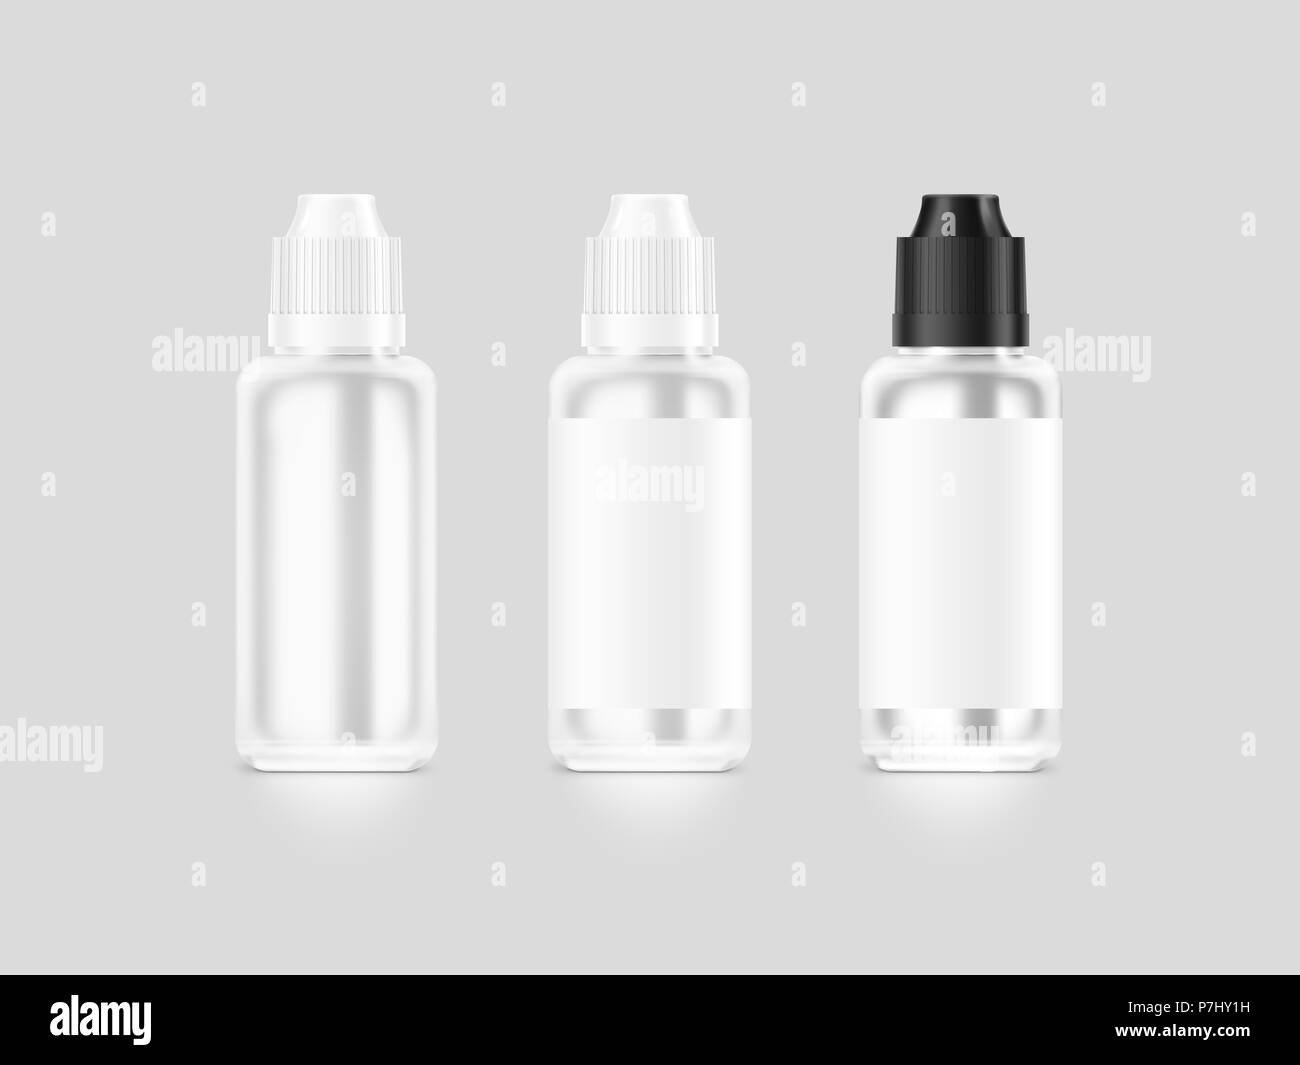 Blank white vape liquid bottle mockup isolated, clipping path, 3d illustration. Clear vapor juice flacon mock up template. Vaporizer dropper flavor vi Stock Photo